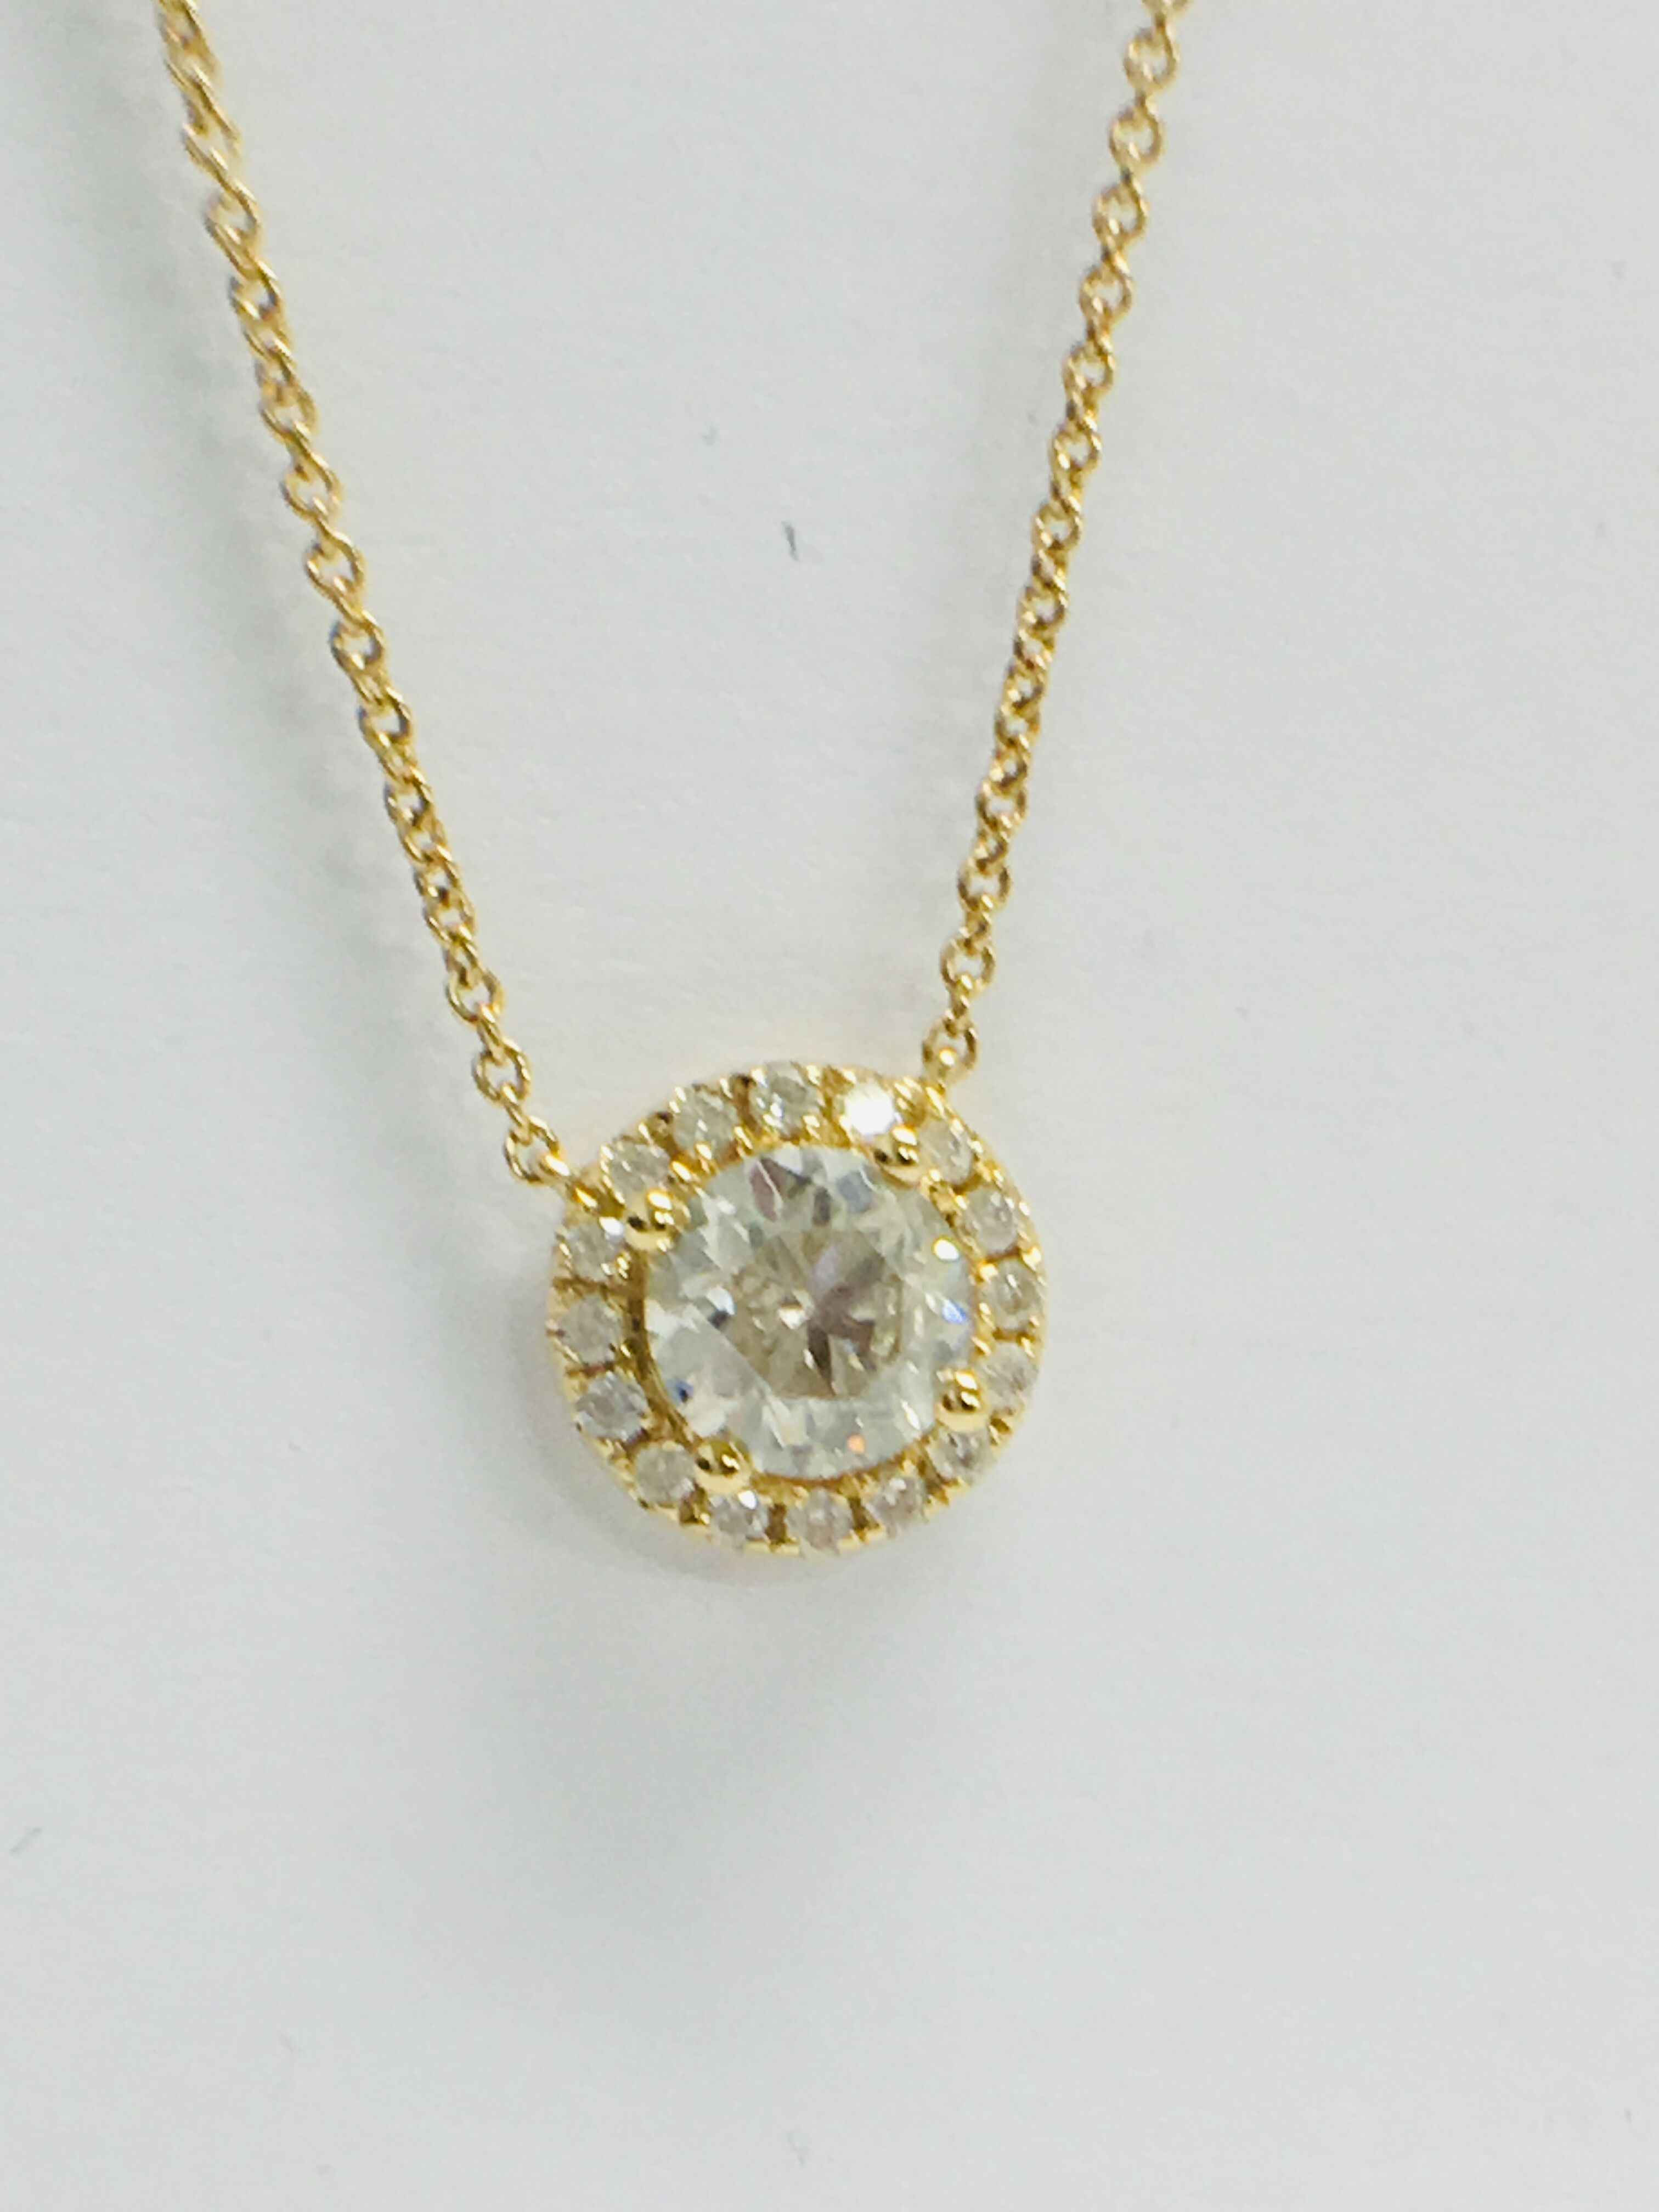 18ct yellow gold diamond necklace. tdw.